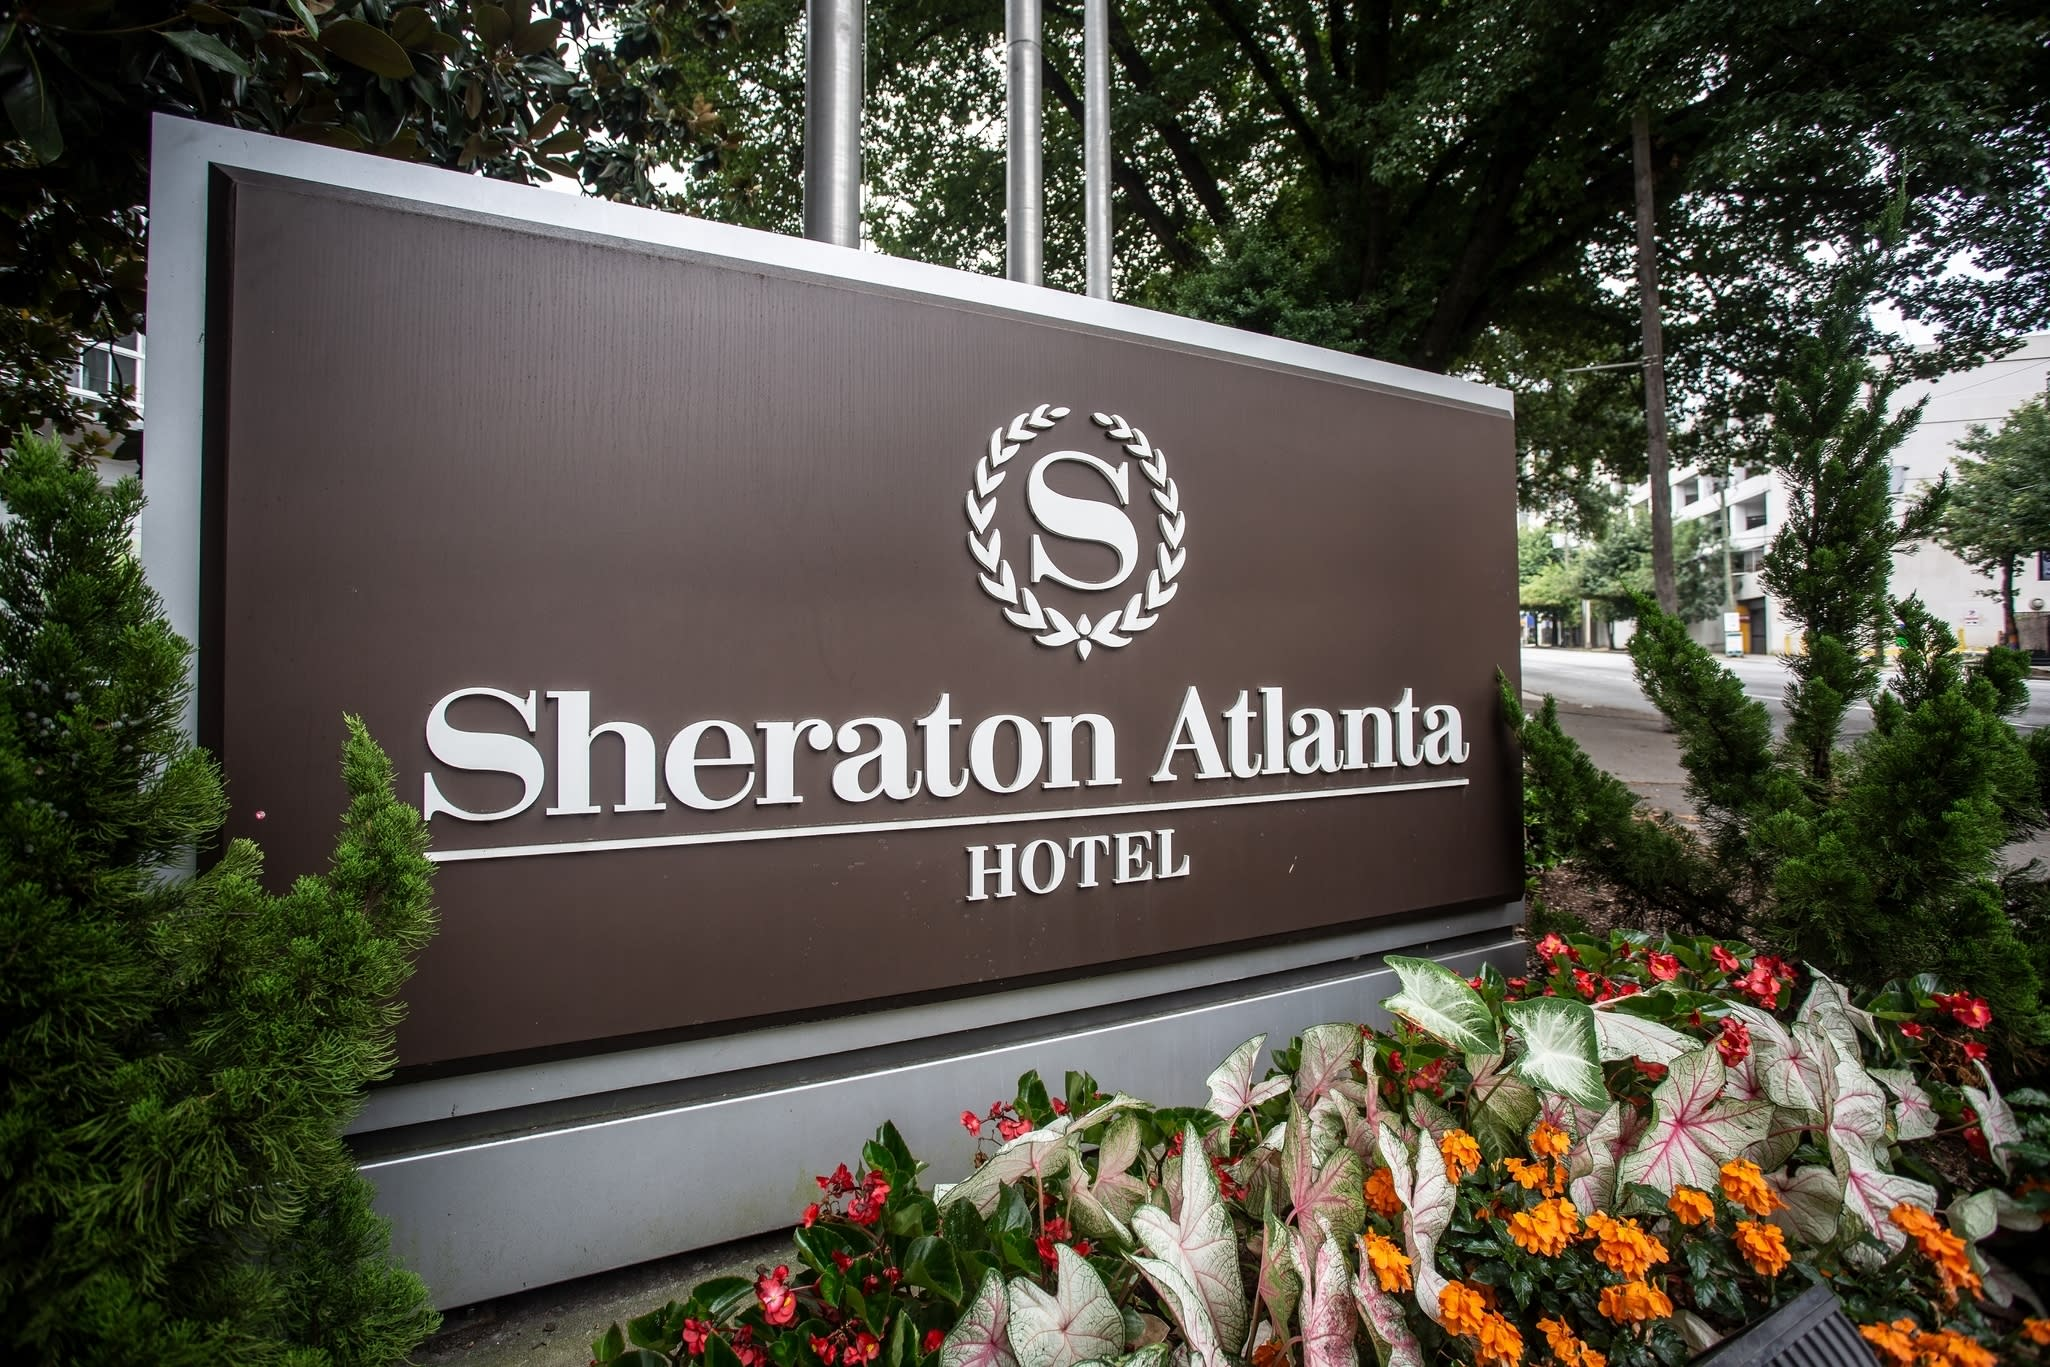 "FILE-In this Wednesday, July 31, 2019 file photo, the sign at the entrance to the Sheraton Atlanta Hotel is seen, in Atlanta. A lawsuit alleges ""negligence in the operation and maintenance of the water systems"" caused a Legionnaires' disease outbreak at a downtown Atlanta hotel. The lawsuit was filed Monday in Gwinnett County State Court by Germany Greer, who says he tested positive for the disease after attending a conference at the Sheraton Atlanta Hotel June 27-July 1. (AP Photo/Ron Harris, File)"